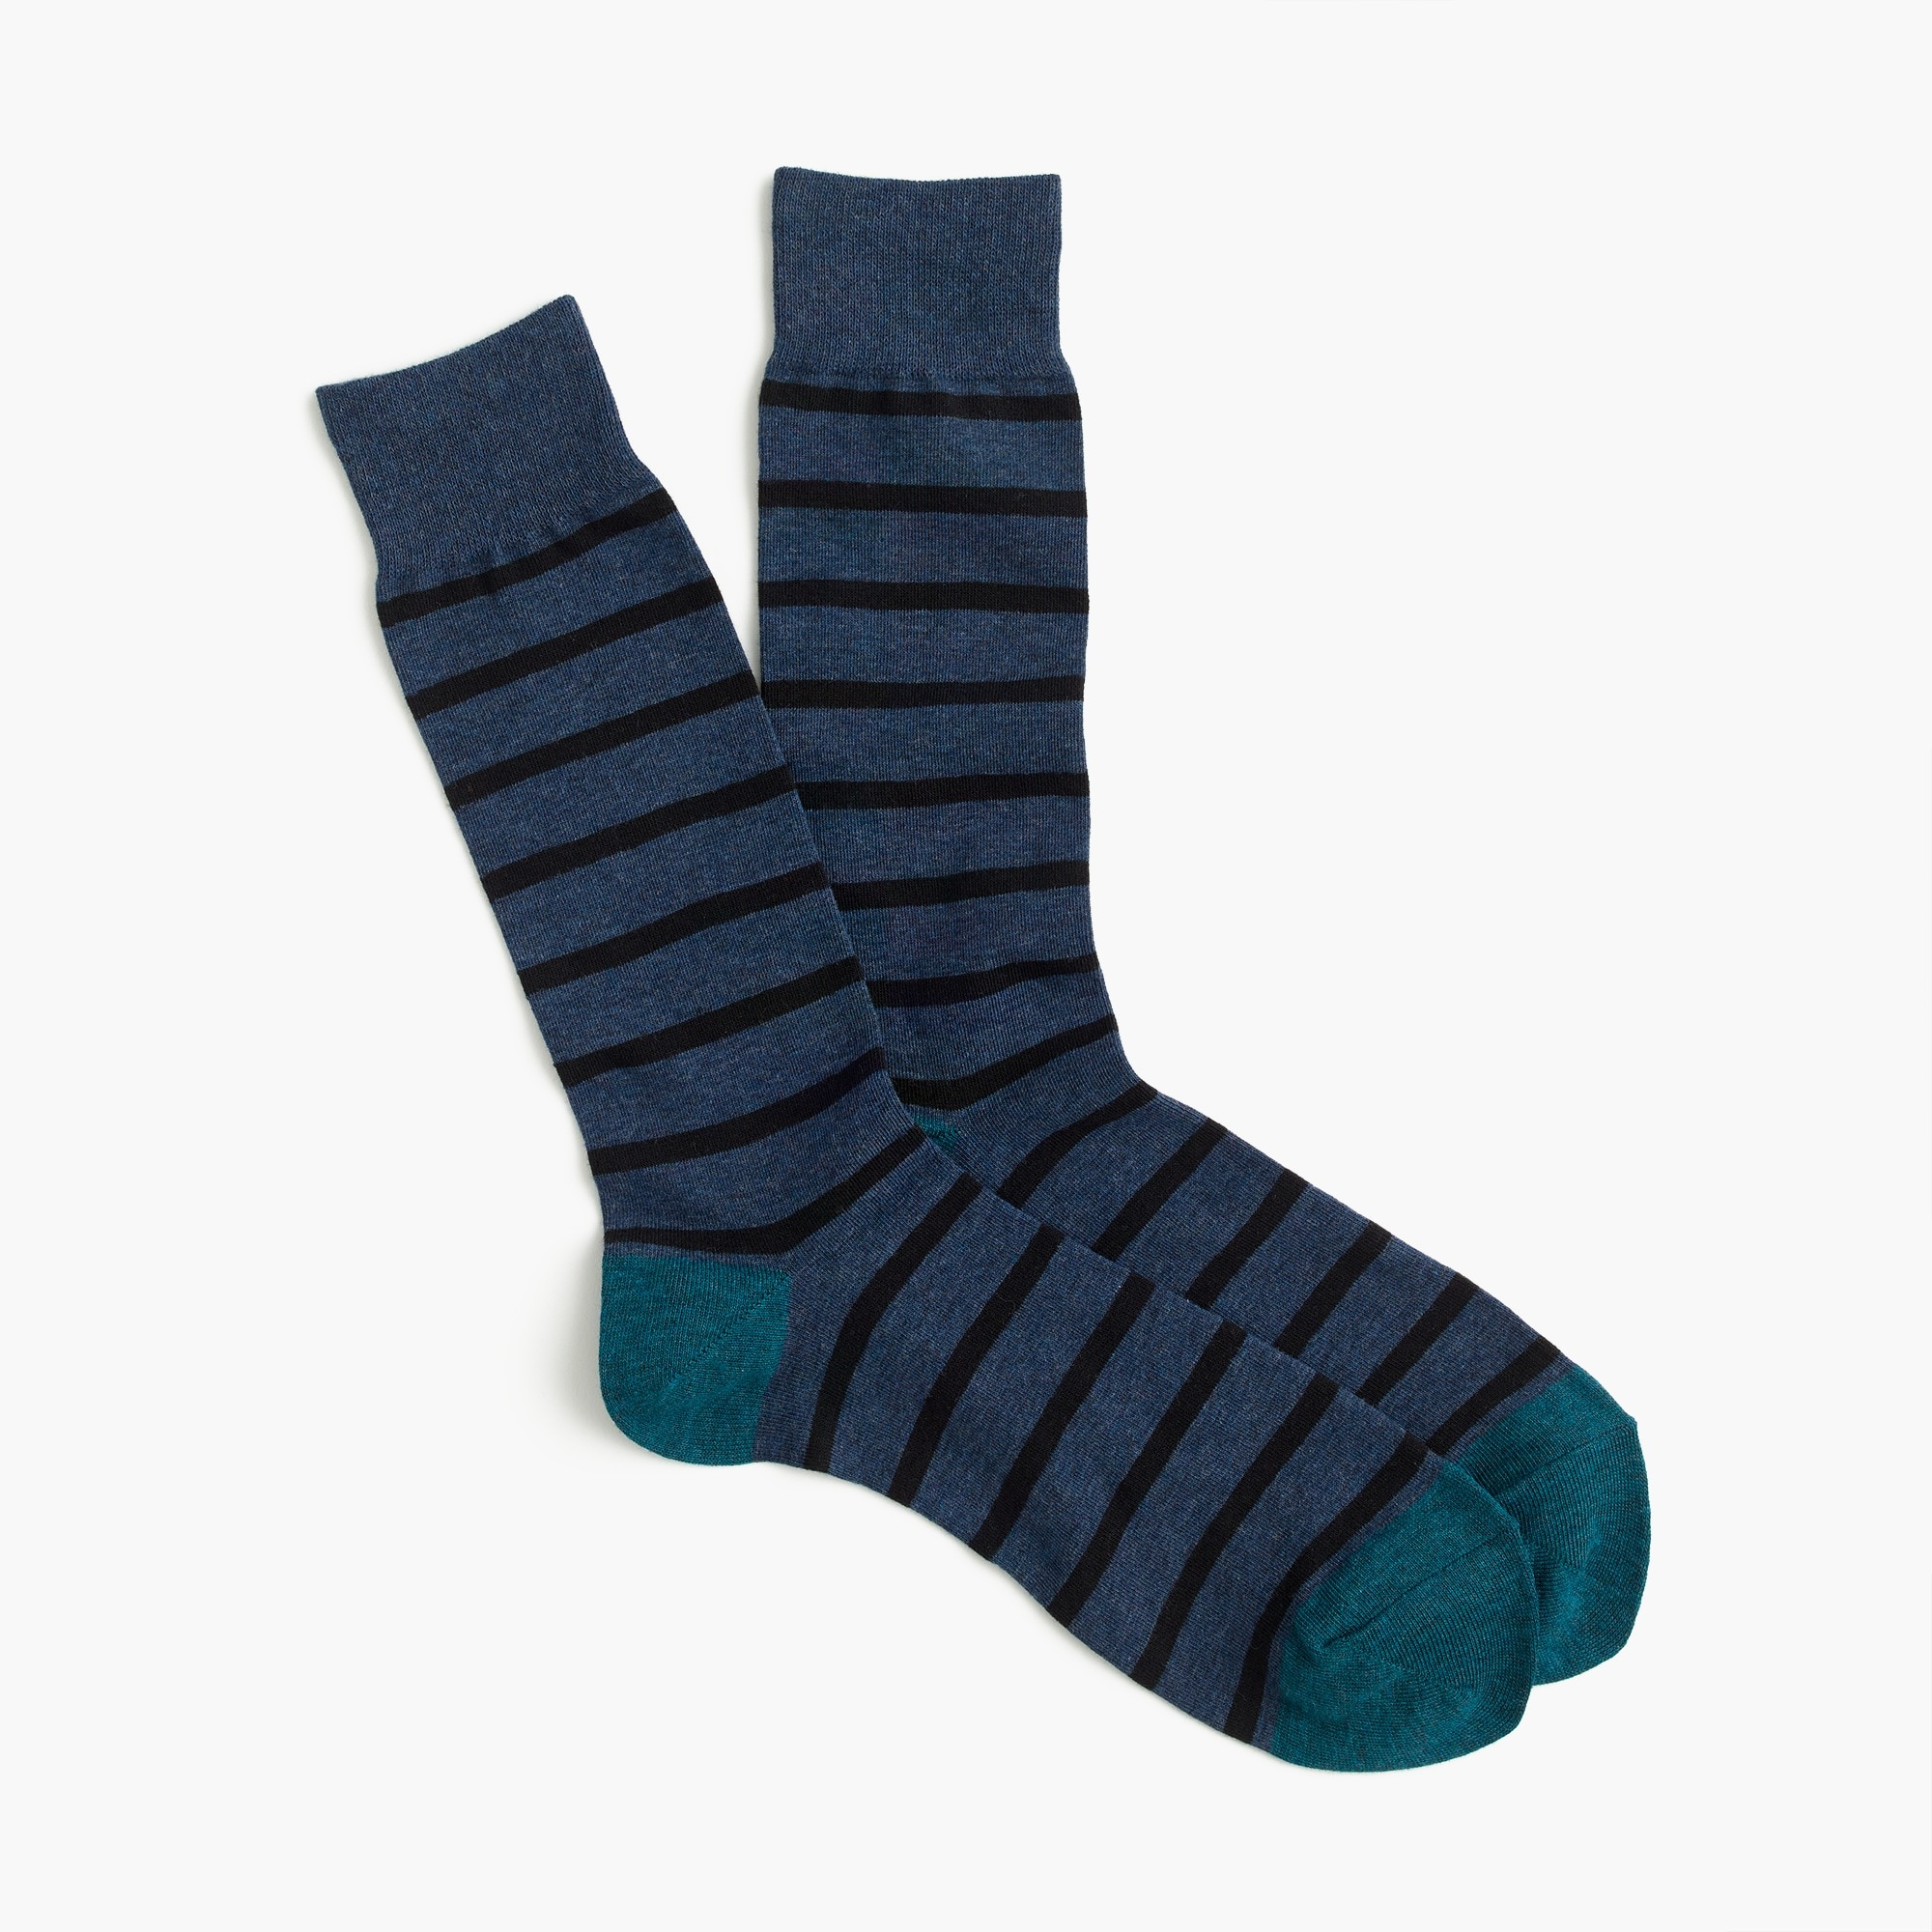 Narrow striped socks men socks c